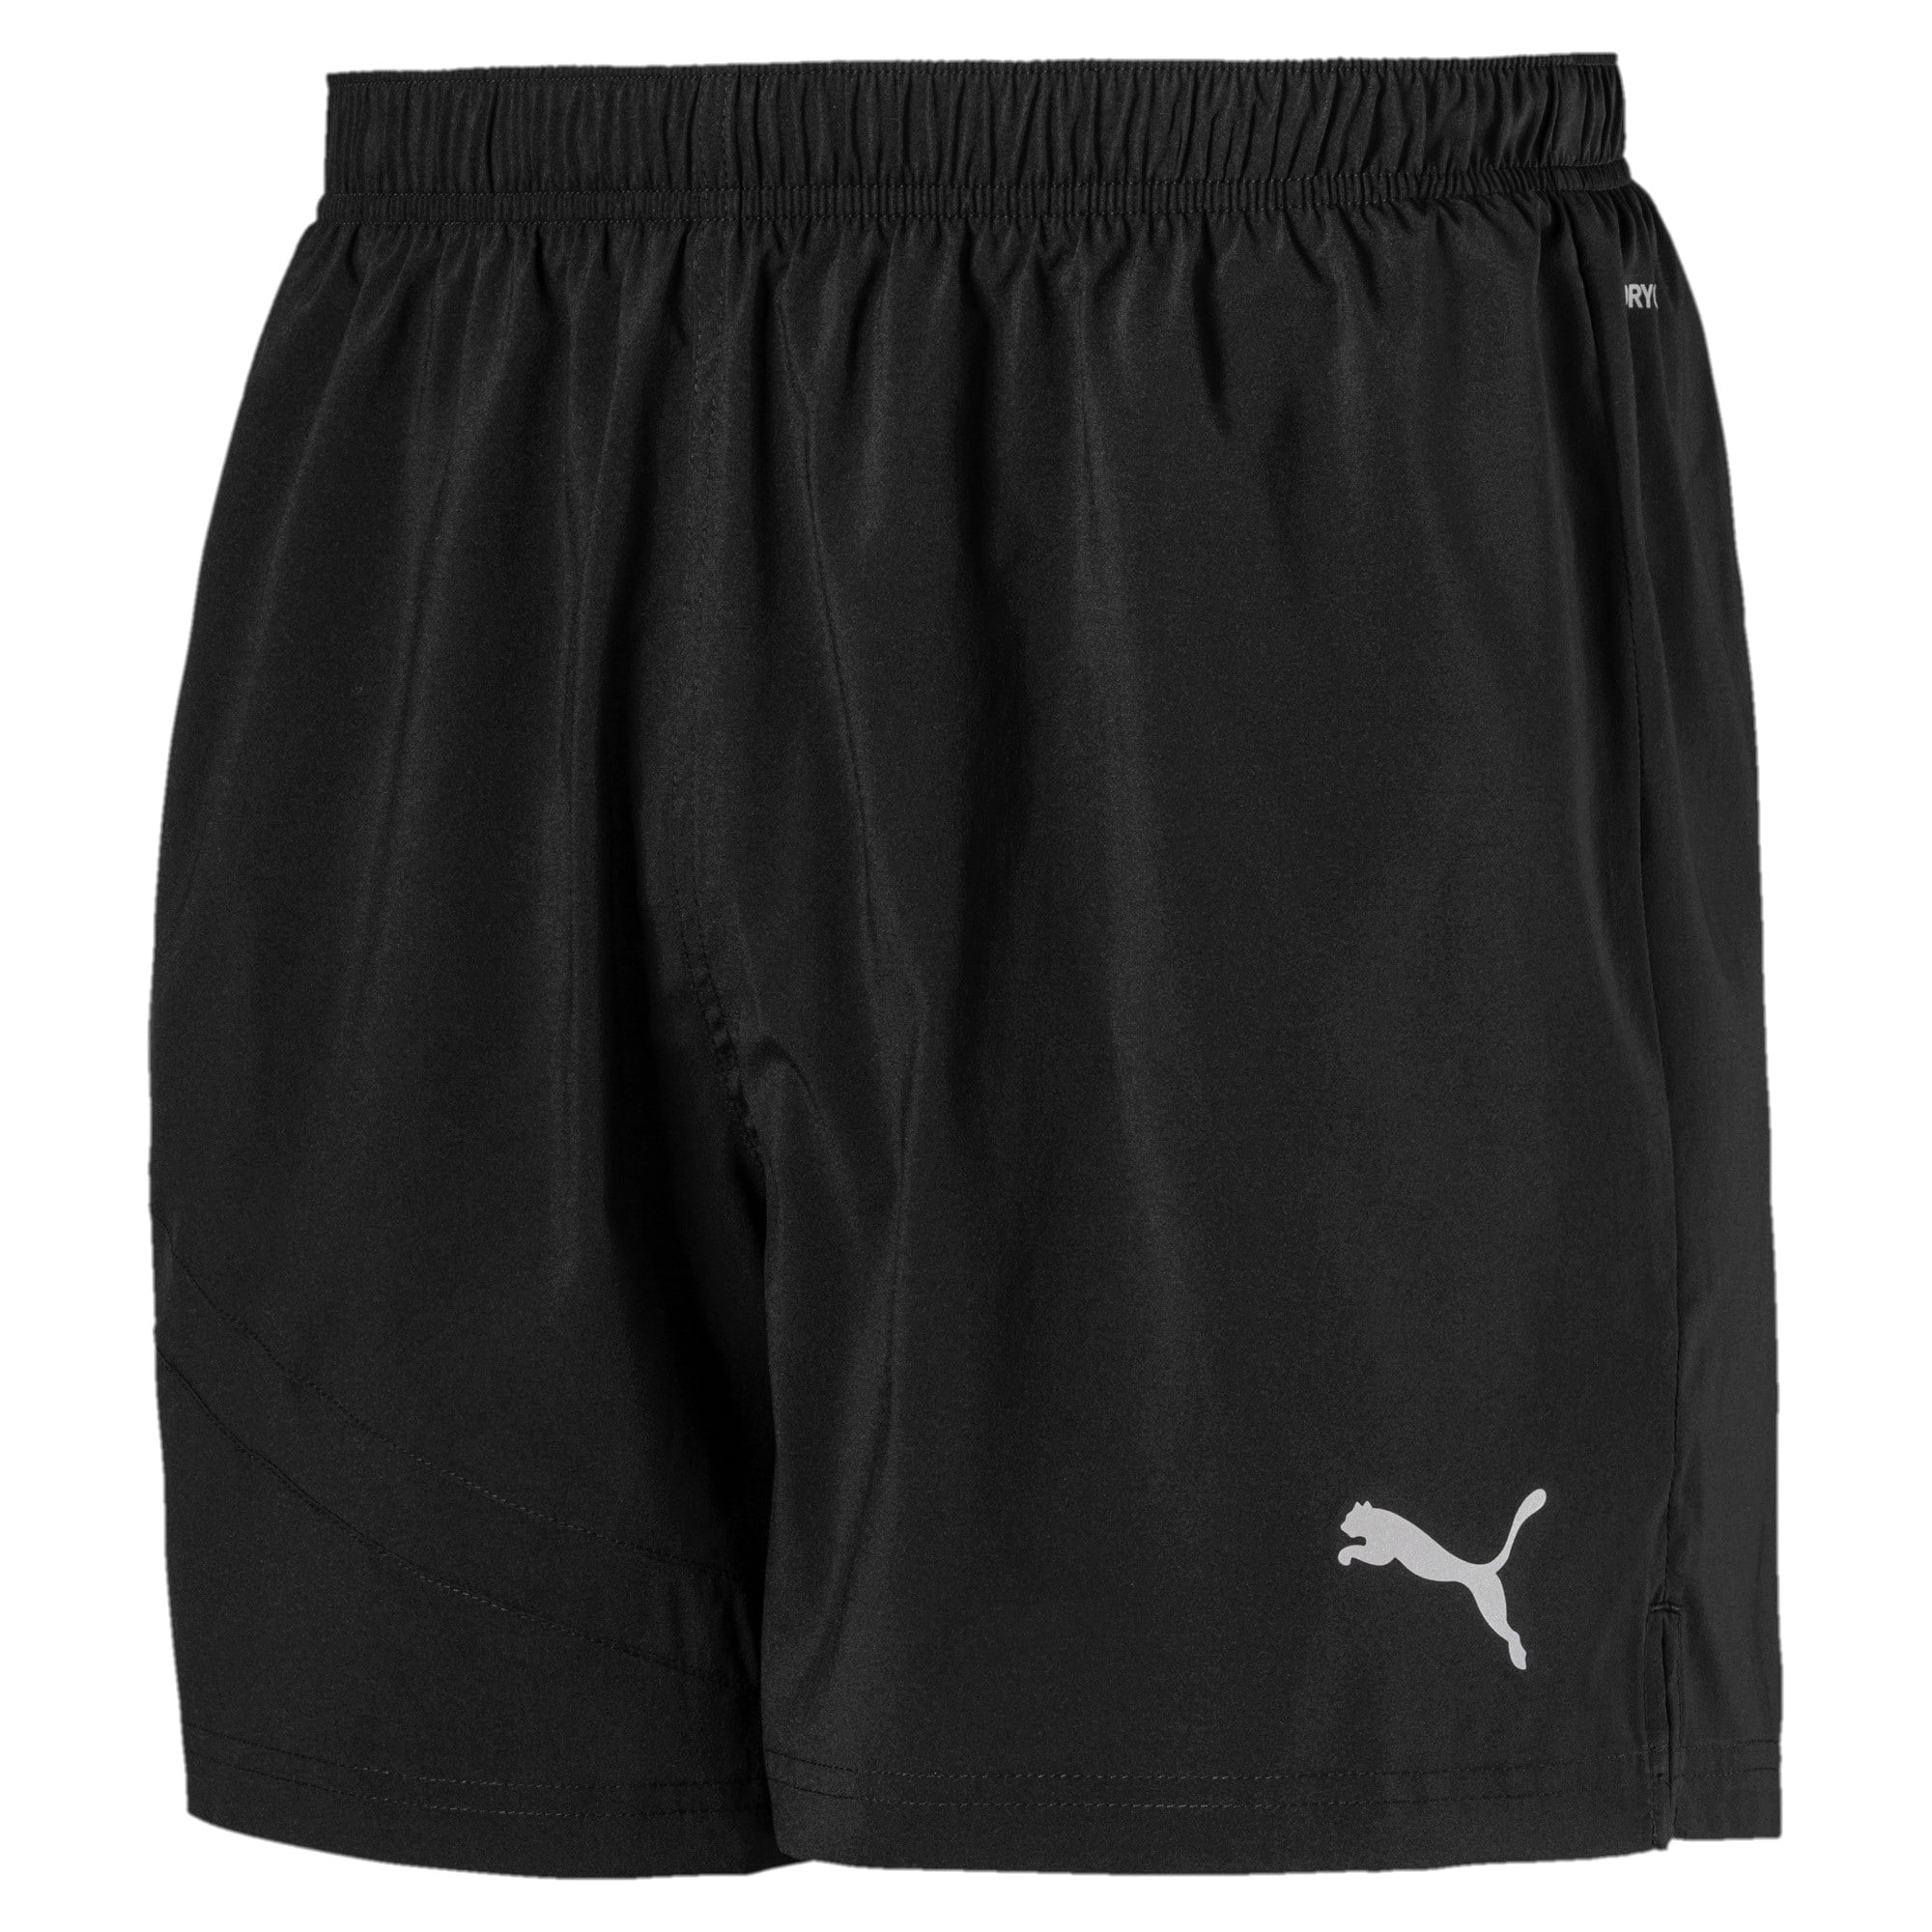 Thumbnail 4 of Ignite Men's Shorts, Puma Black, medium